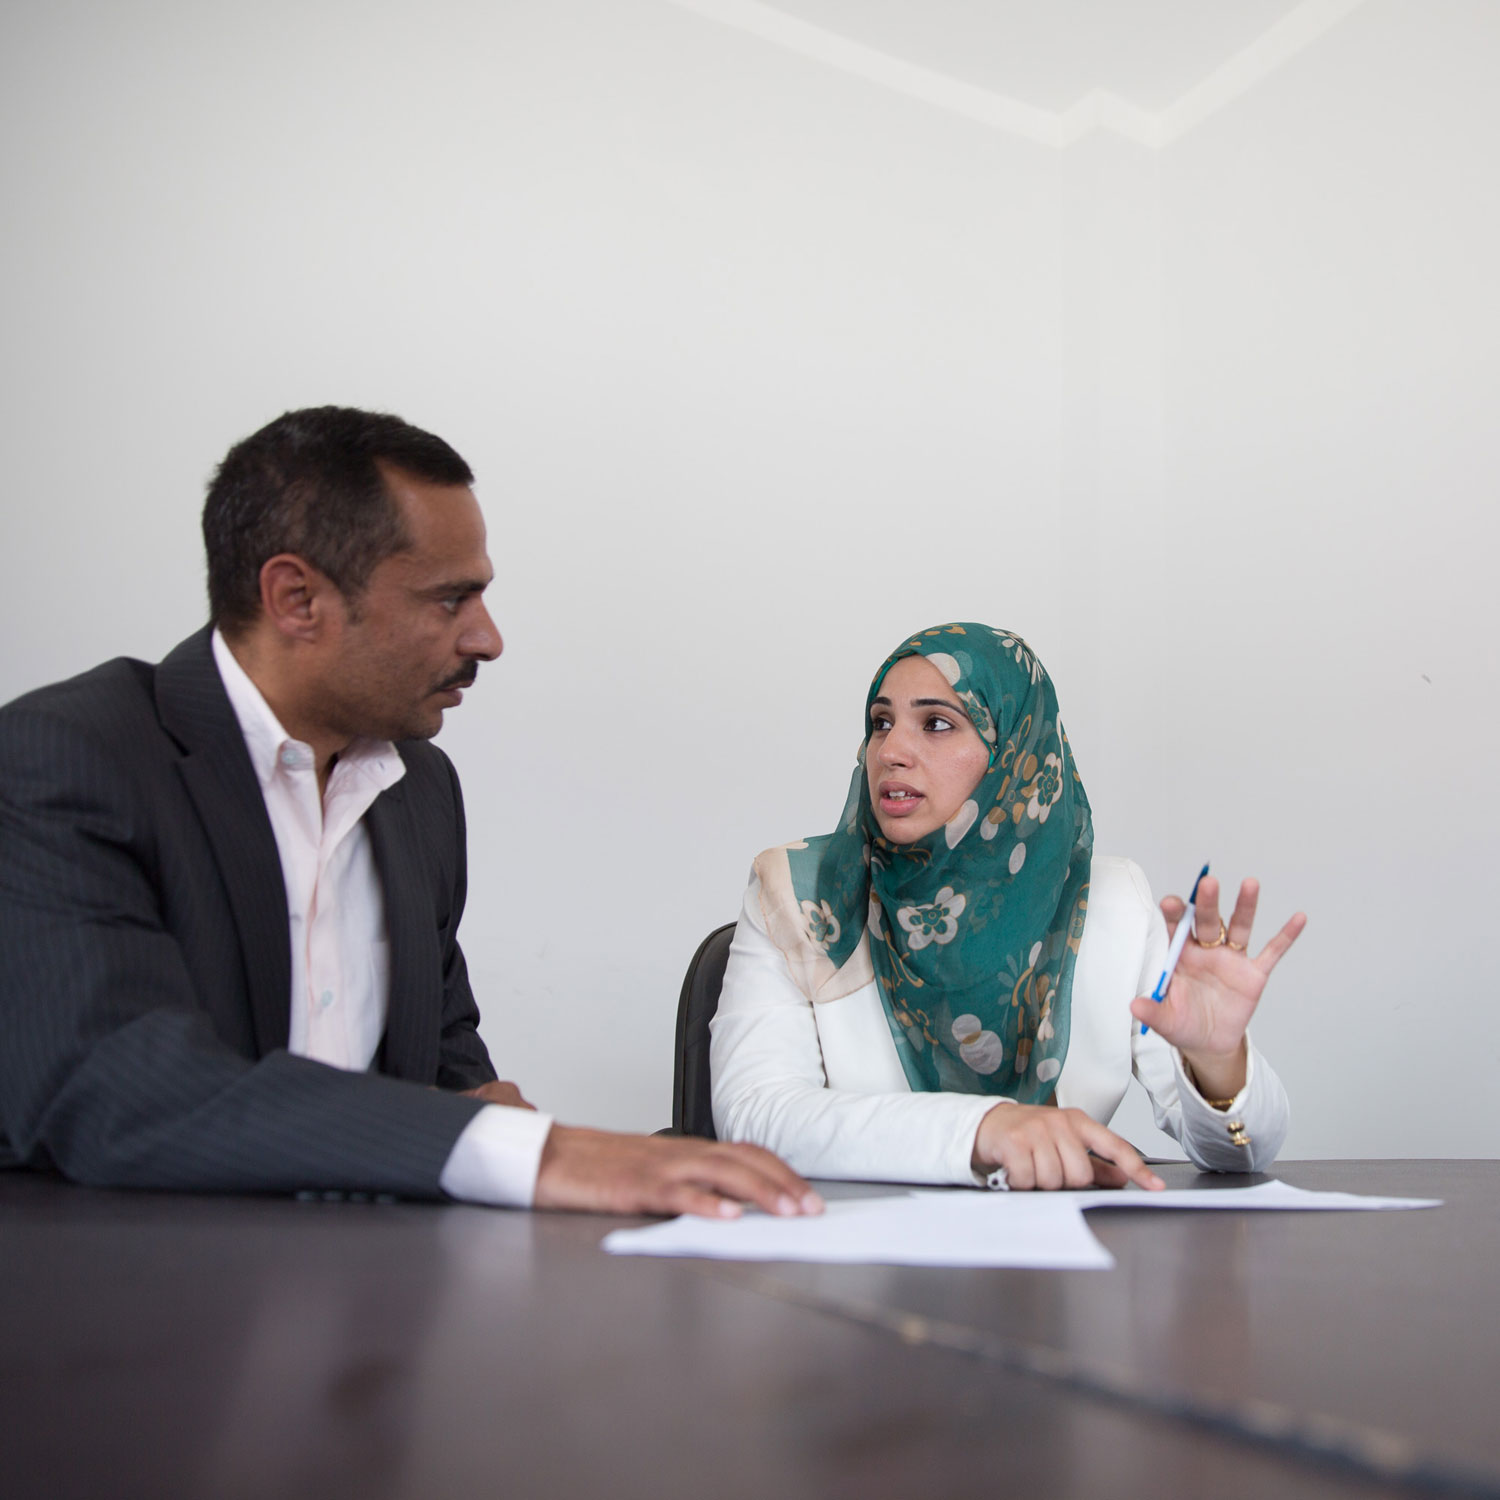 Heba's manager Essam Ahmed has believed in her since she started working with the company 5 years ago. He trained her and supported her along the way.   Photo for USAID/Egypt.